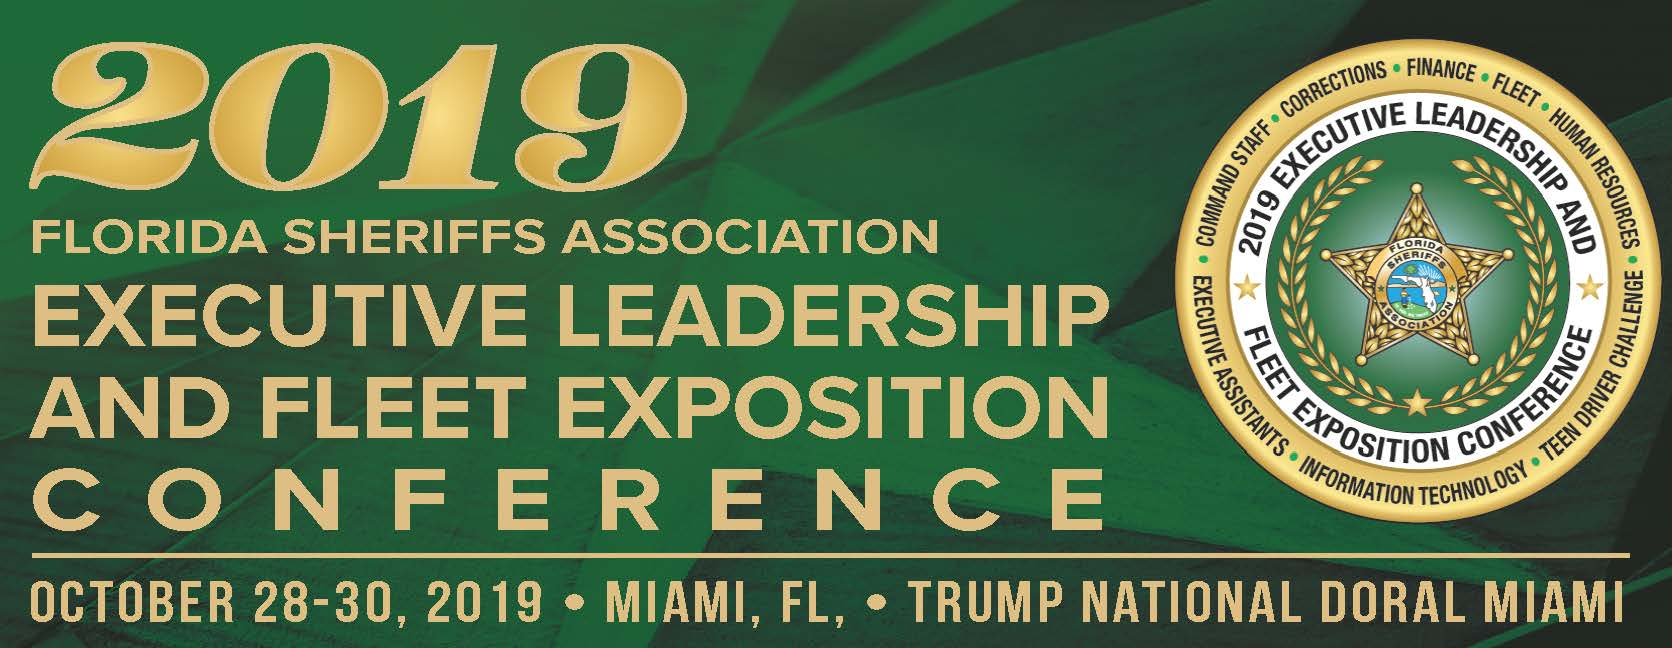 2019 Executive Leadership and Fleet Exposition Conference